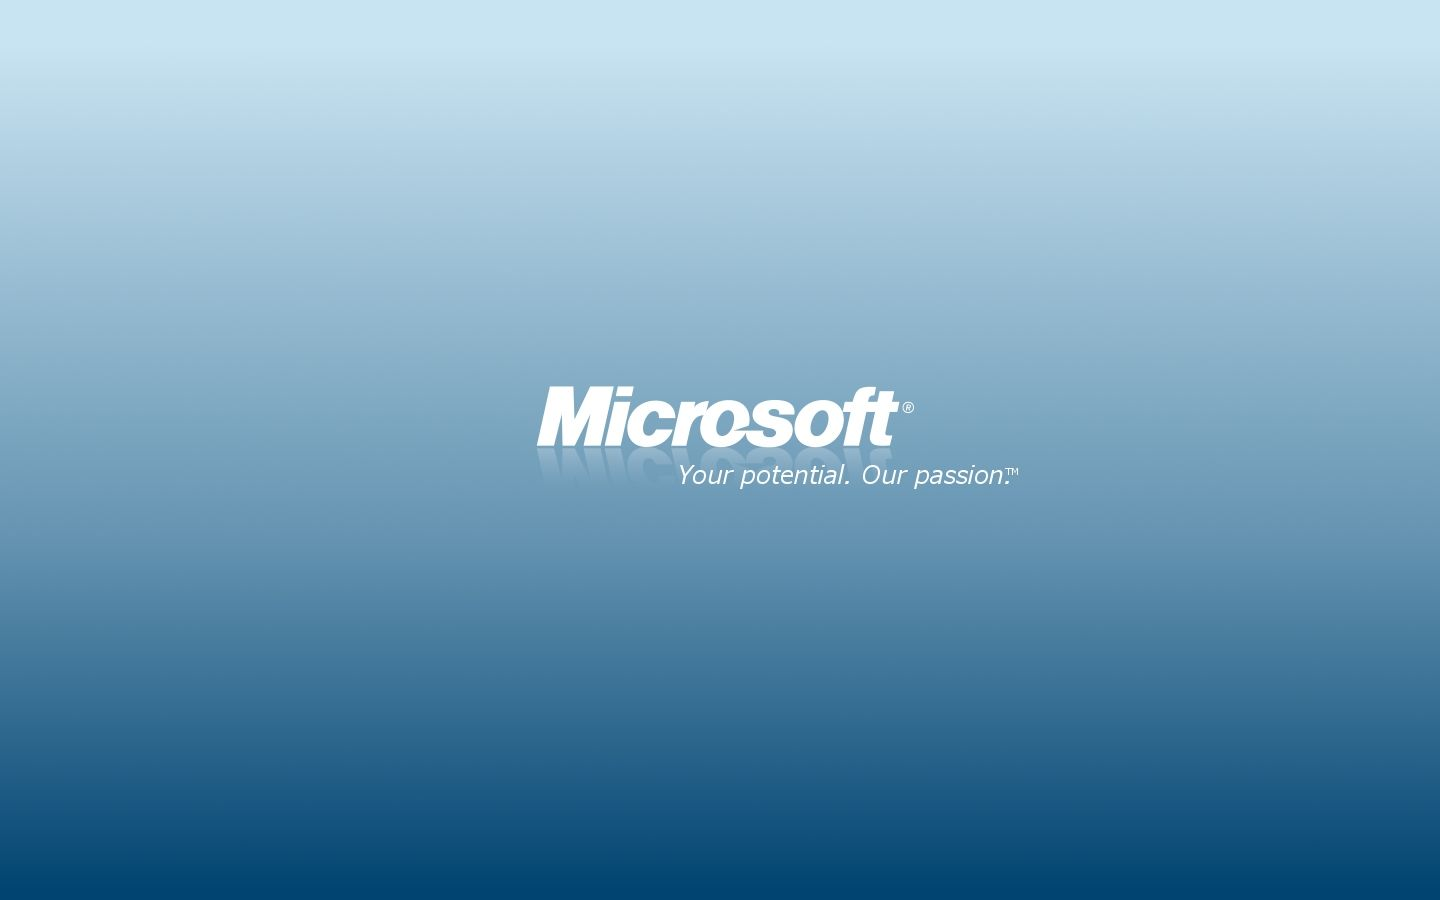 Wallpaper download microsoft - Find This Pin And More On Download Wallpaper By Wallpaper4676 Microsoft Wallpaper Themes